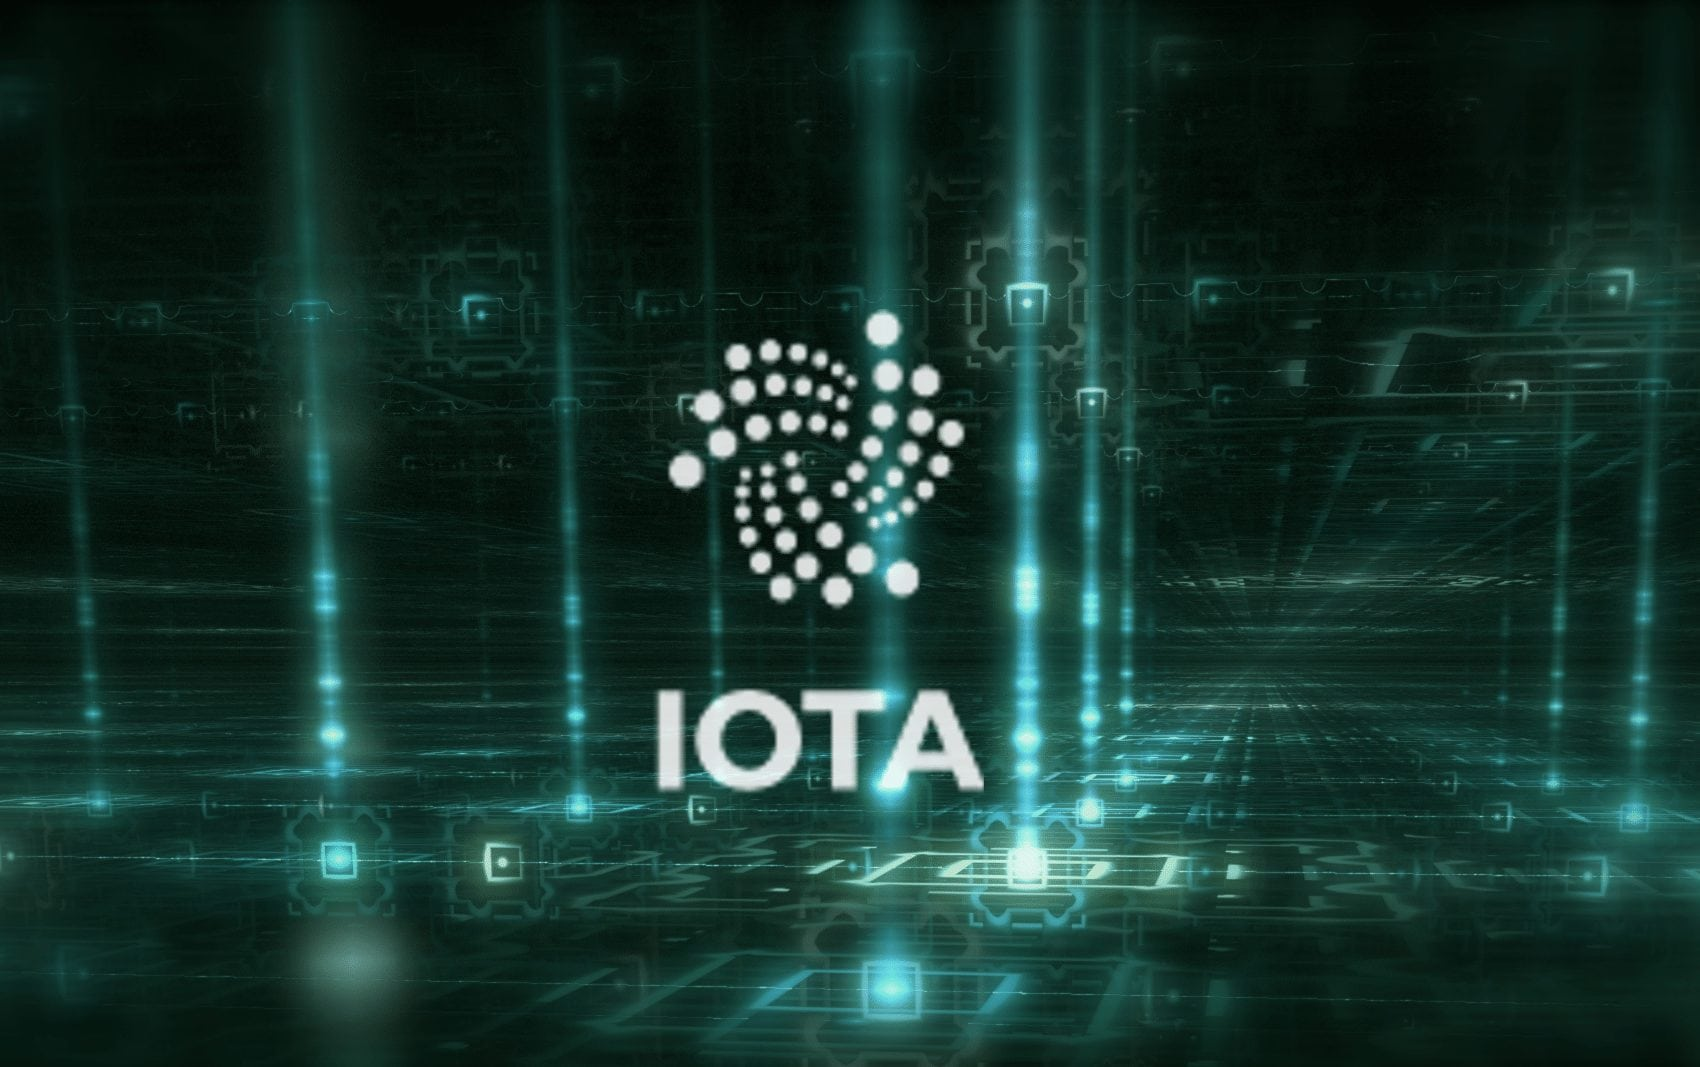 Tangle 1 - IOTA's Tangle Is Faced With Transaction Issues After Spammers Develop Parasite Chains